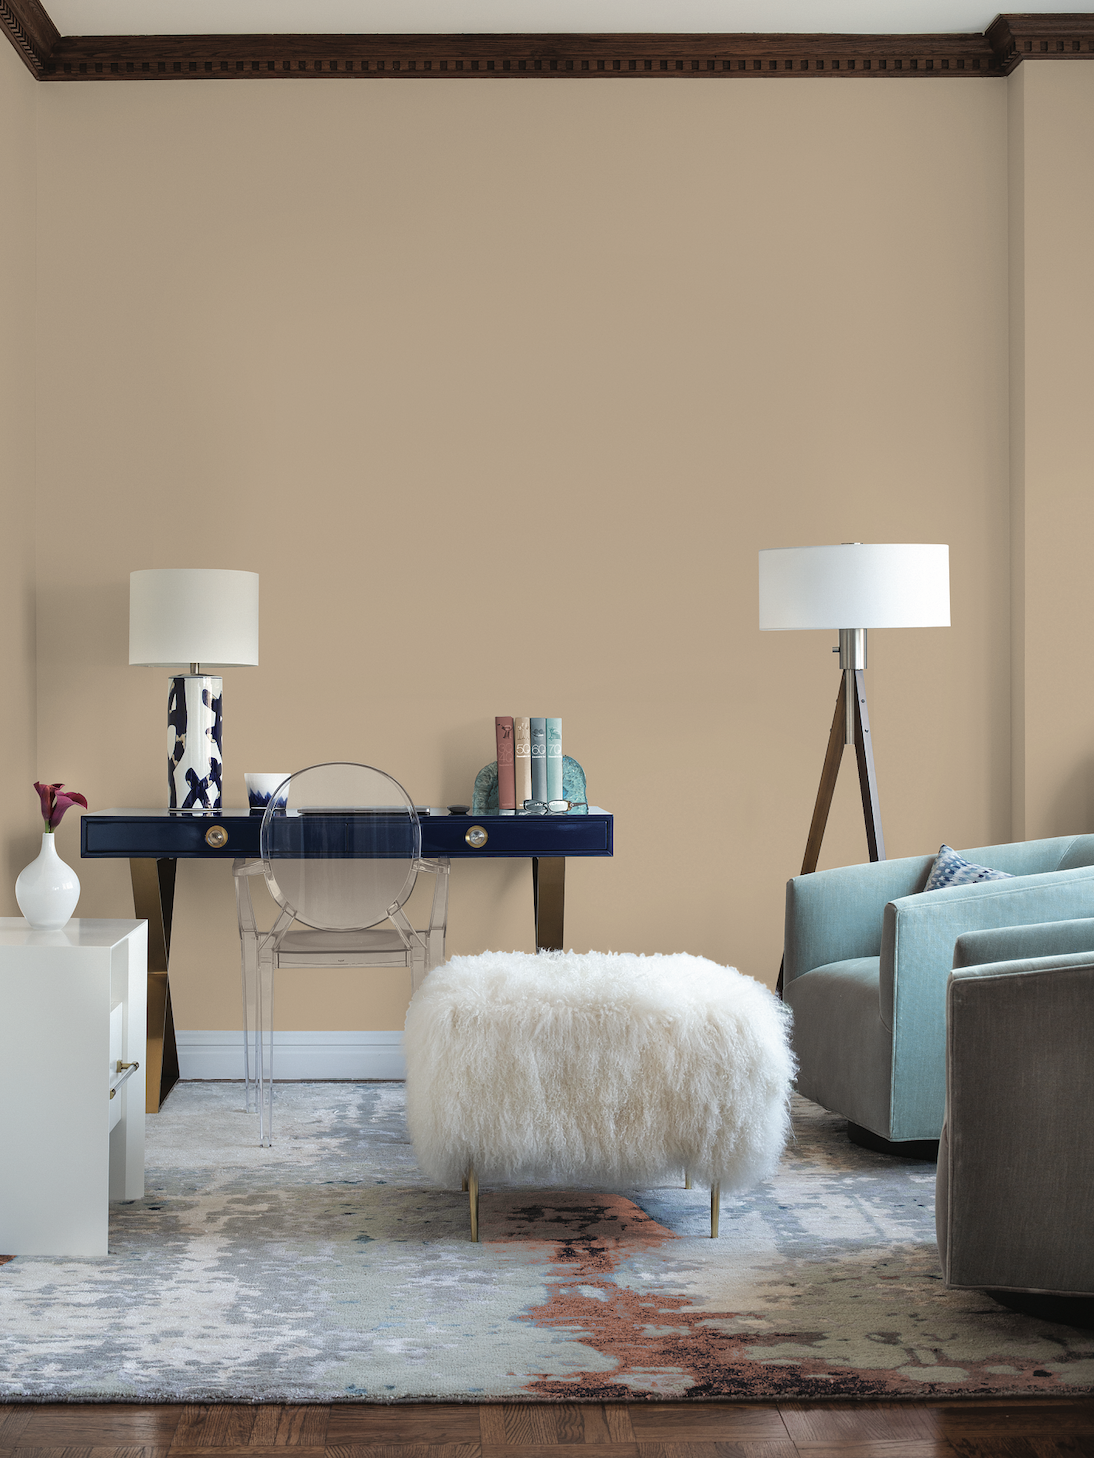 PPG 2021 Palette of the Year - Be Well Interior Inspiration